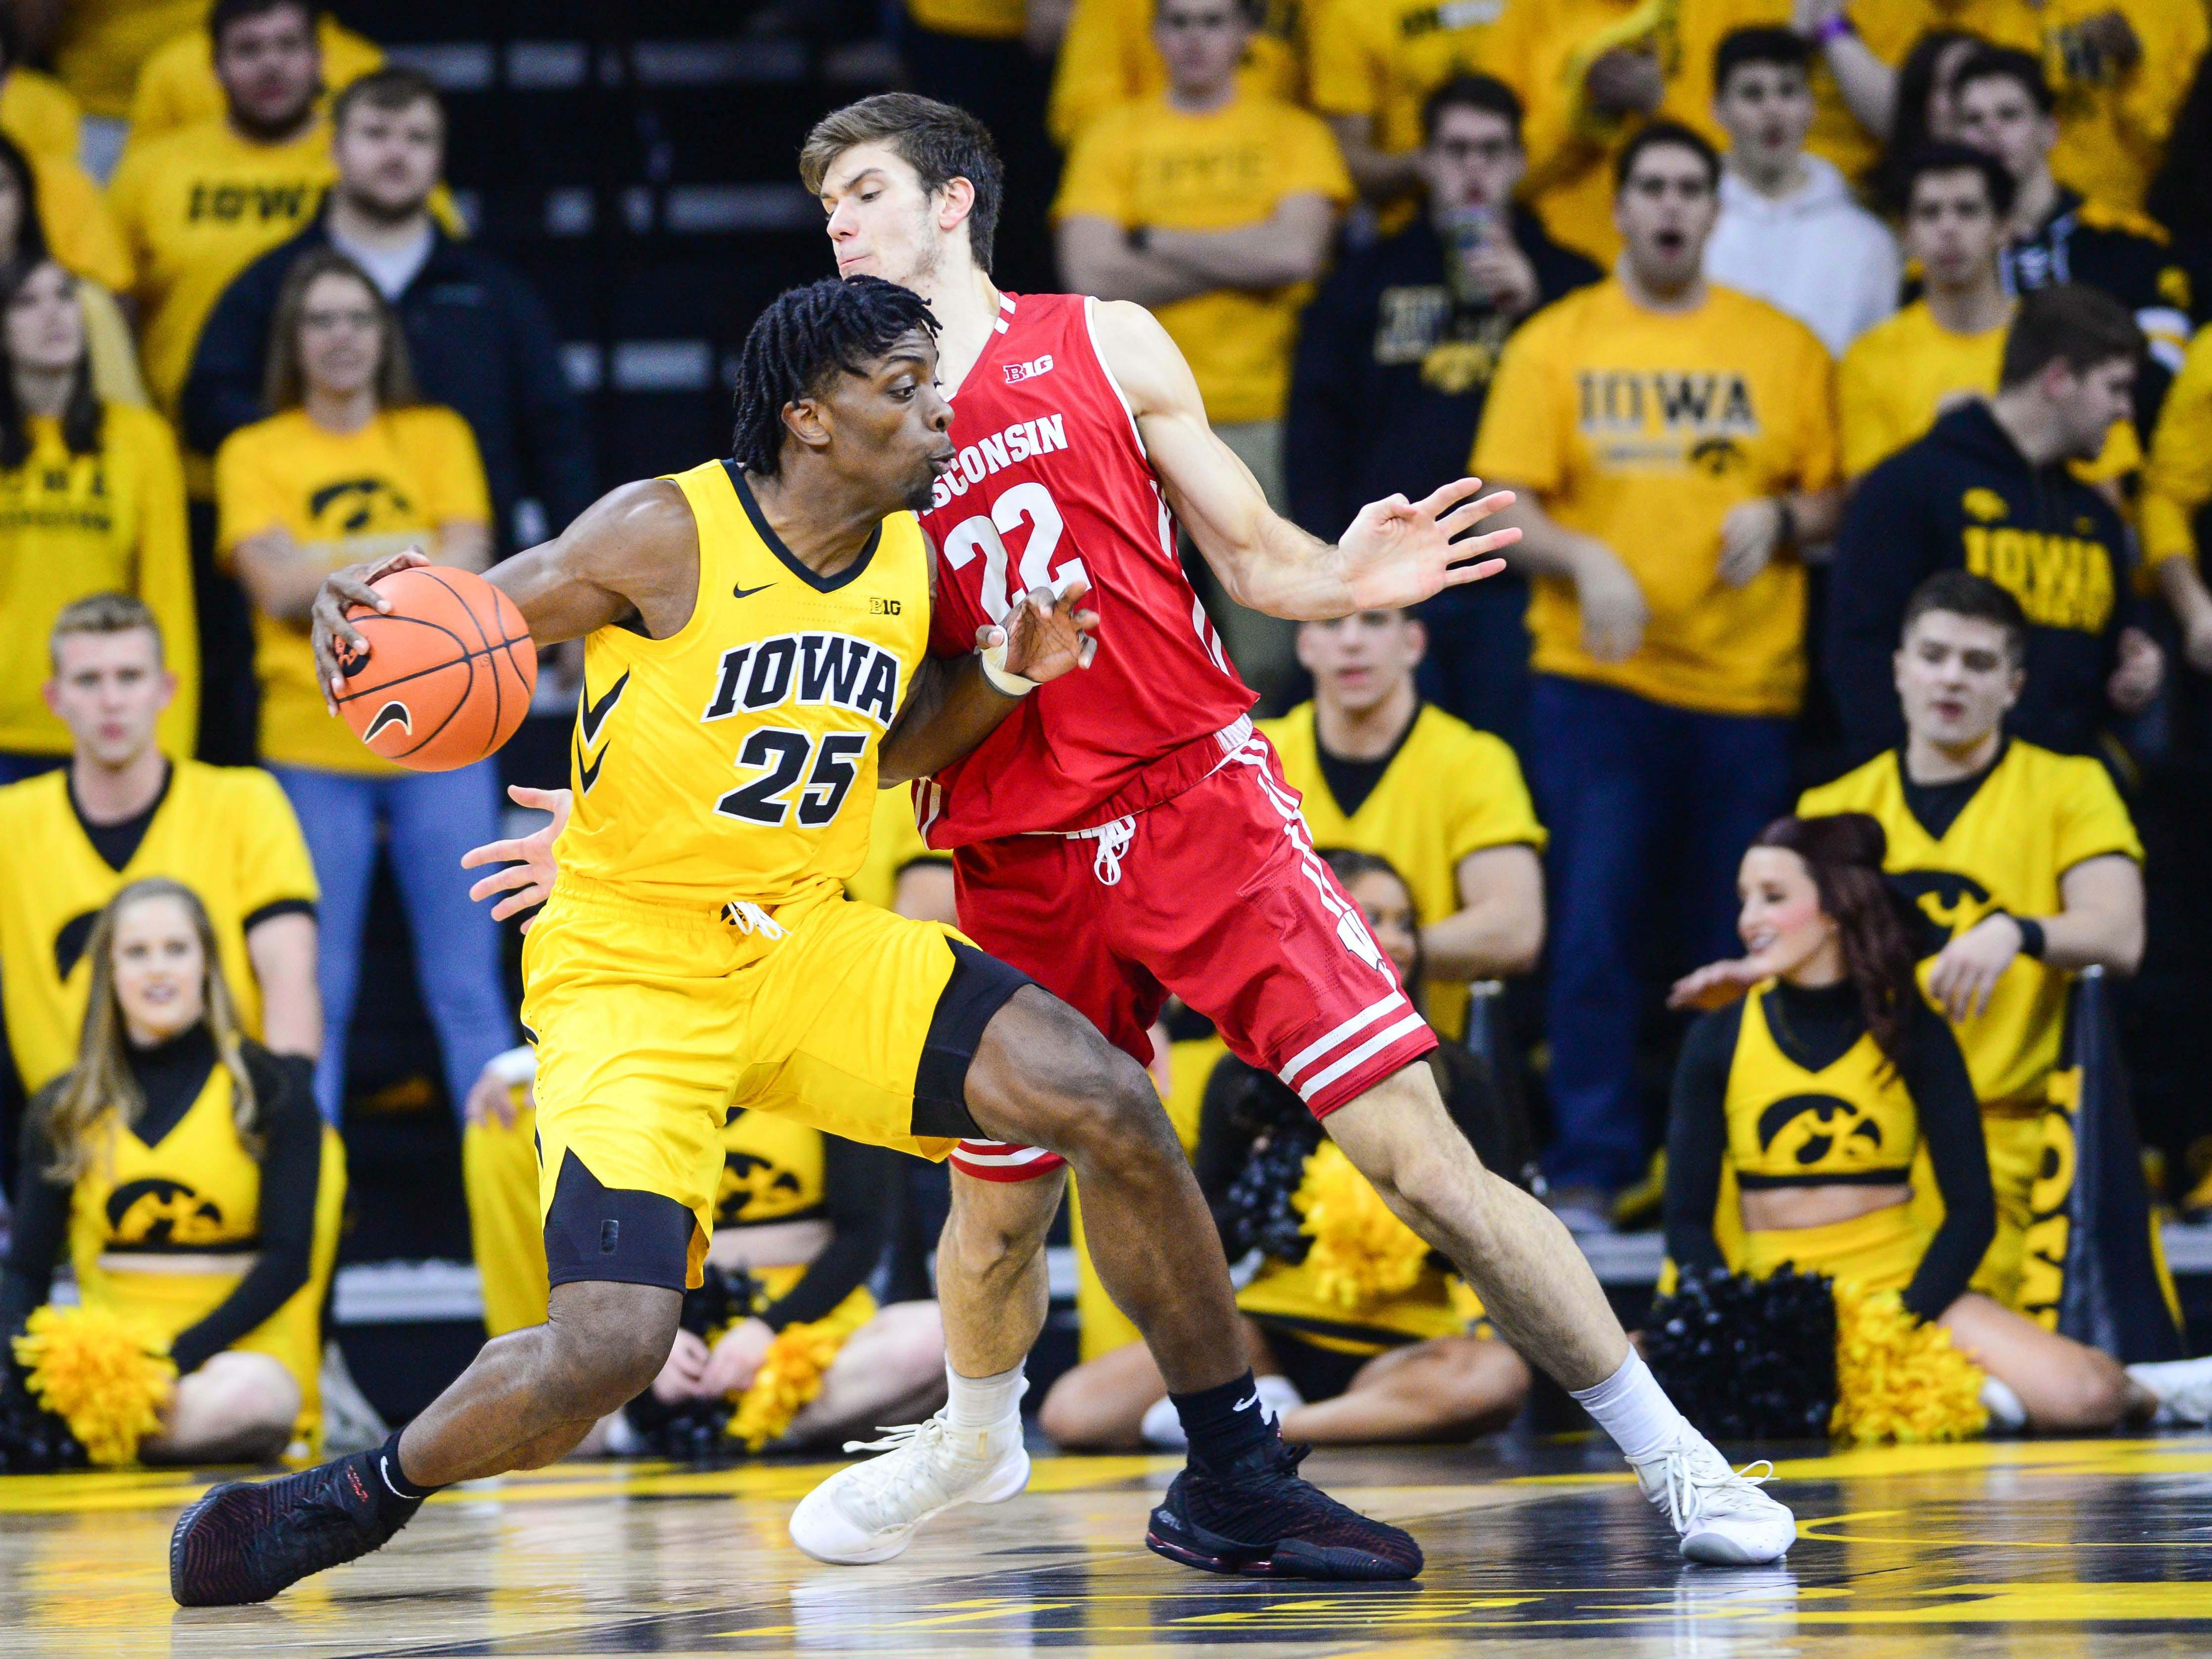 Badgers forward Ethan Happ bodies up on Tyler Cook as he tries to prevent the Iowa forward from getting to the basket on Friday night.